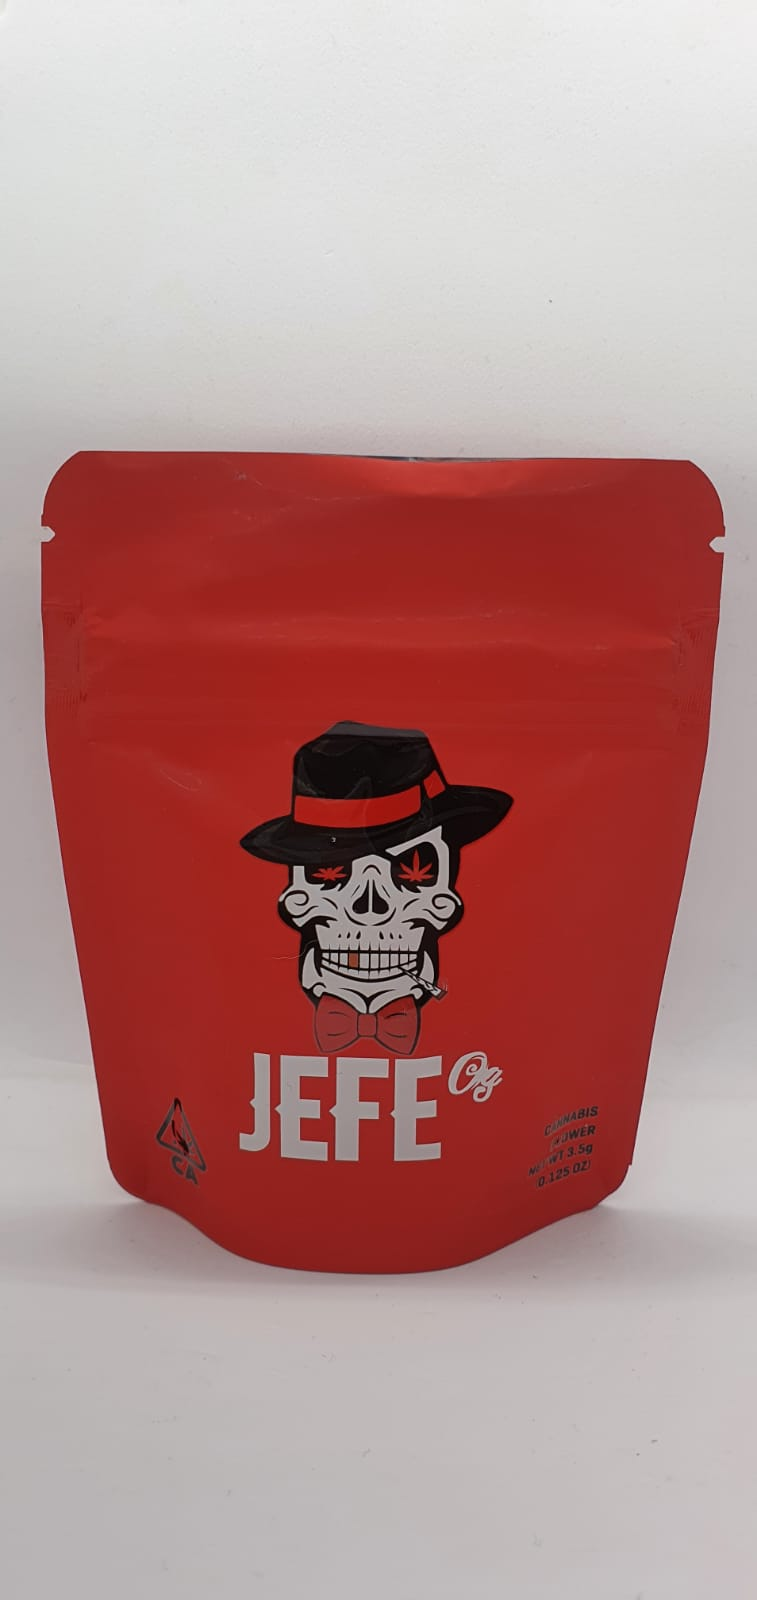 SF Cookies Bag – JEFE 3.5 Grams Bag